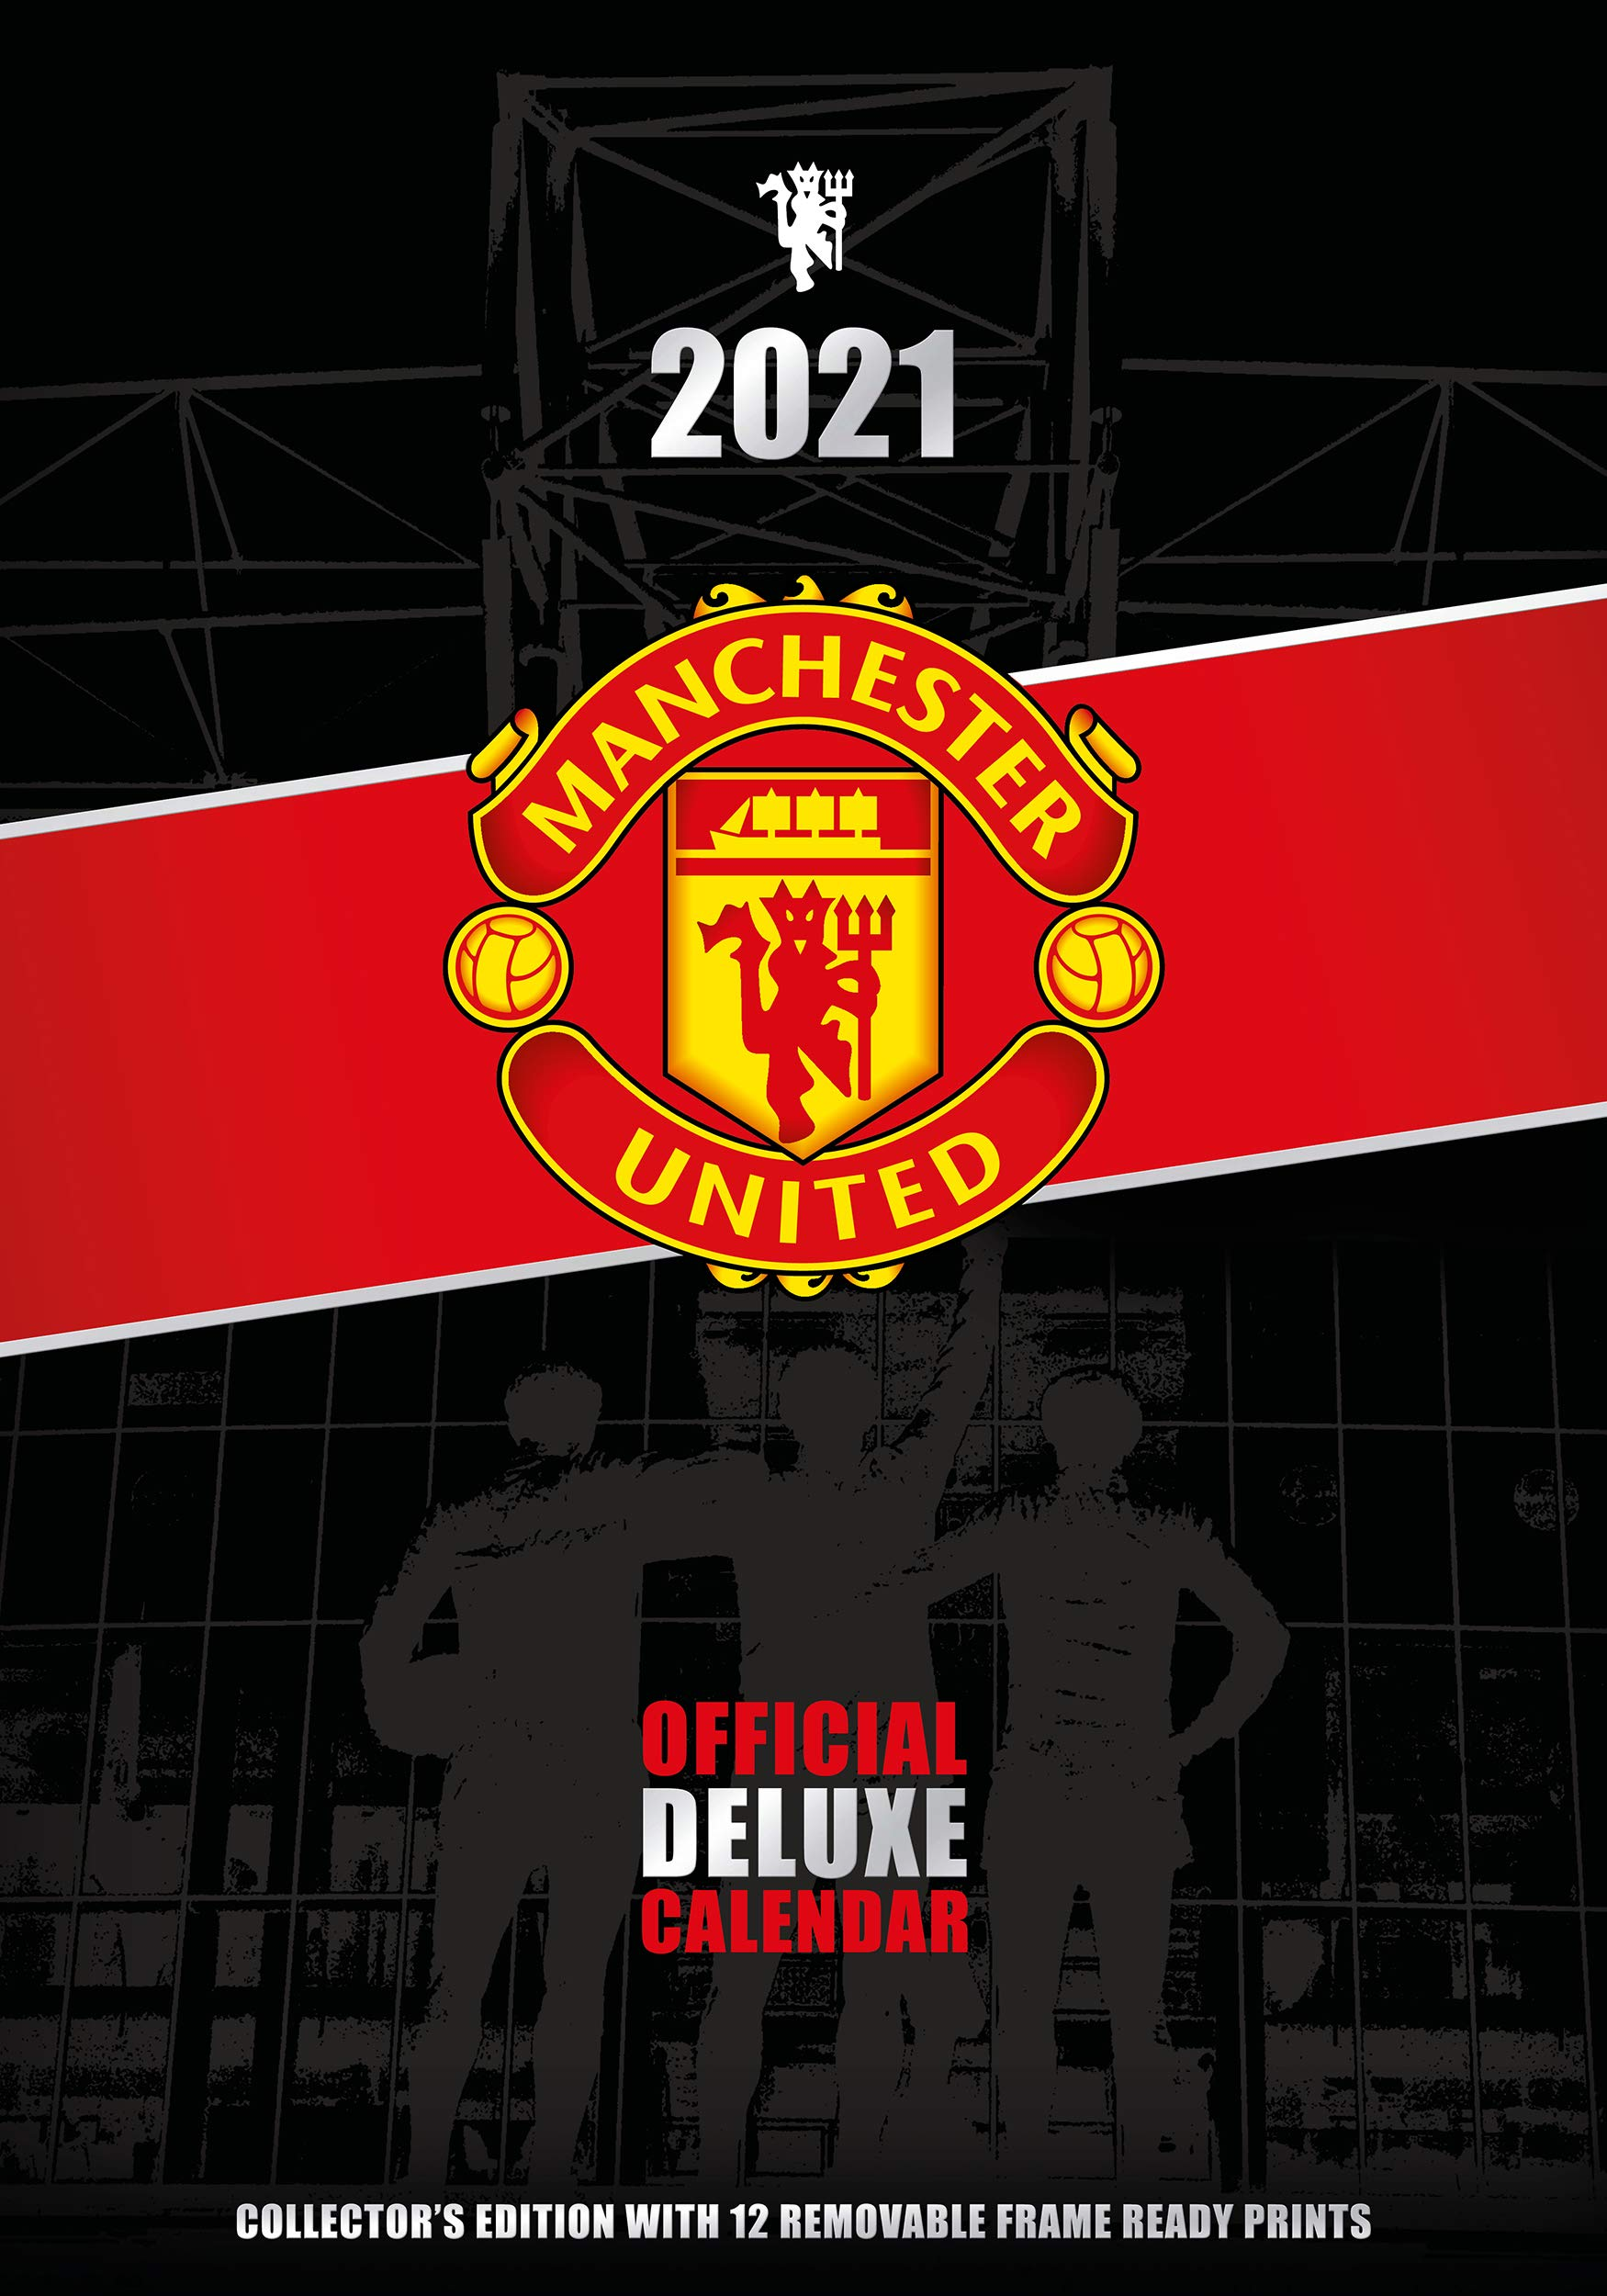 Manchester United FC 2021 Deluxe Calendar   Official Deluxe A3